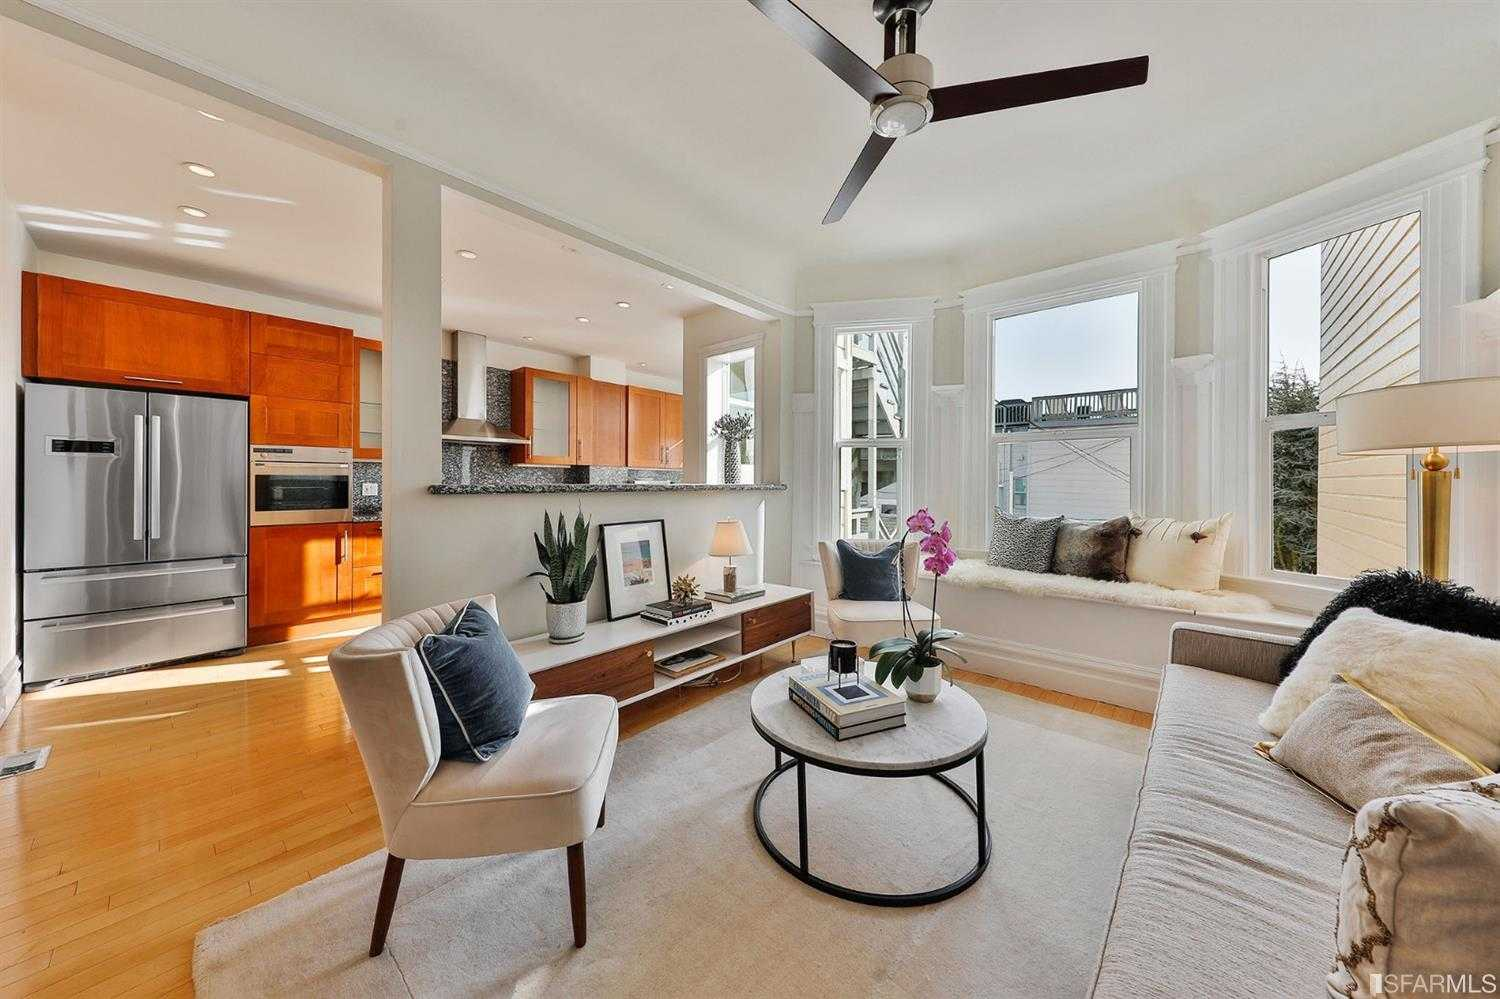 $1,550,000 - 3Br/2Ba -  for Sale in San Francisco